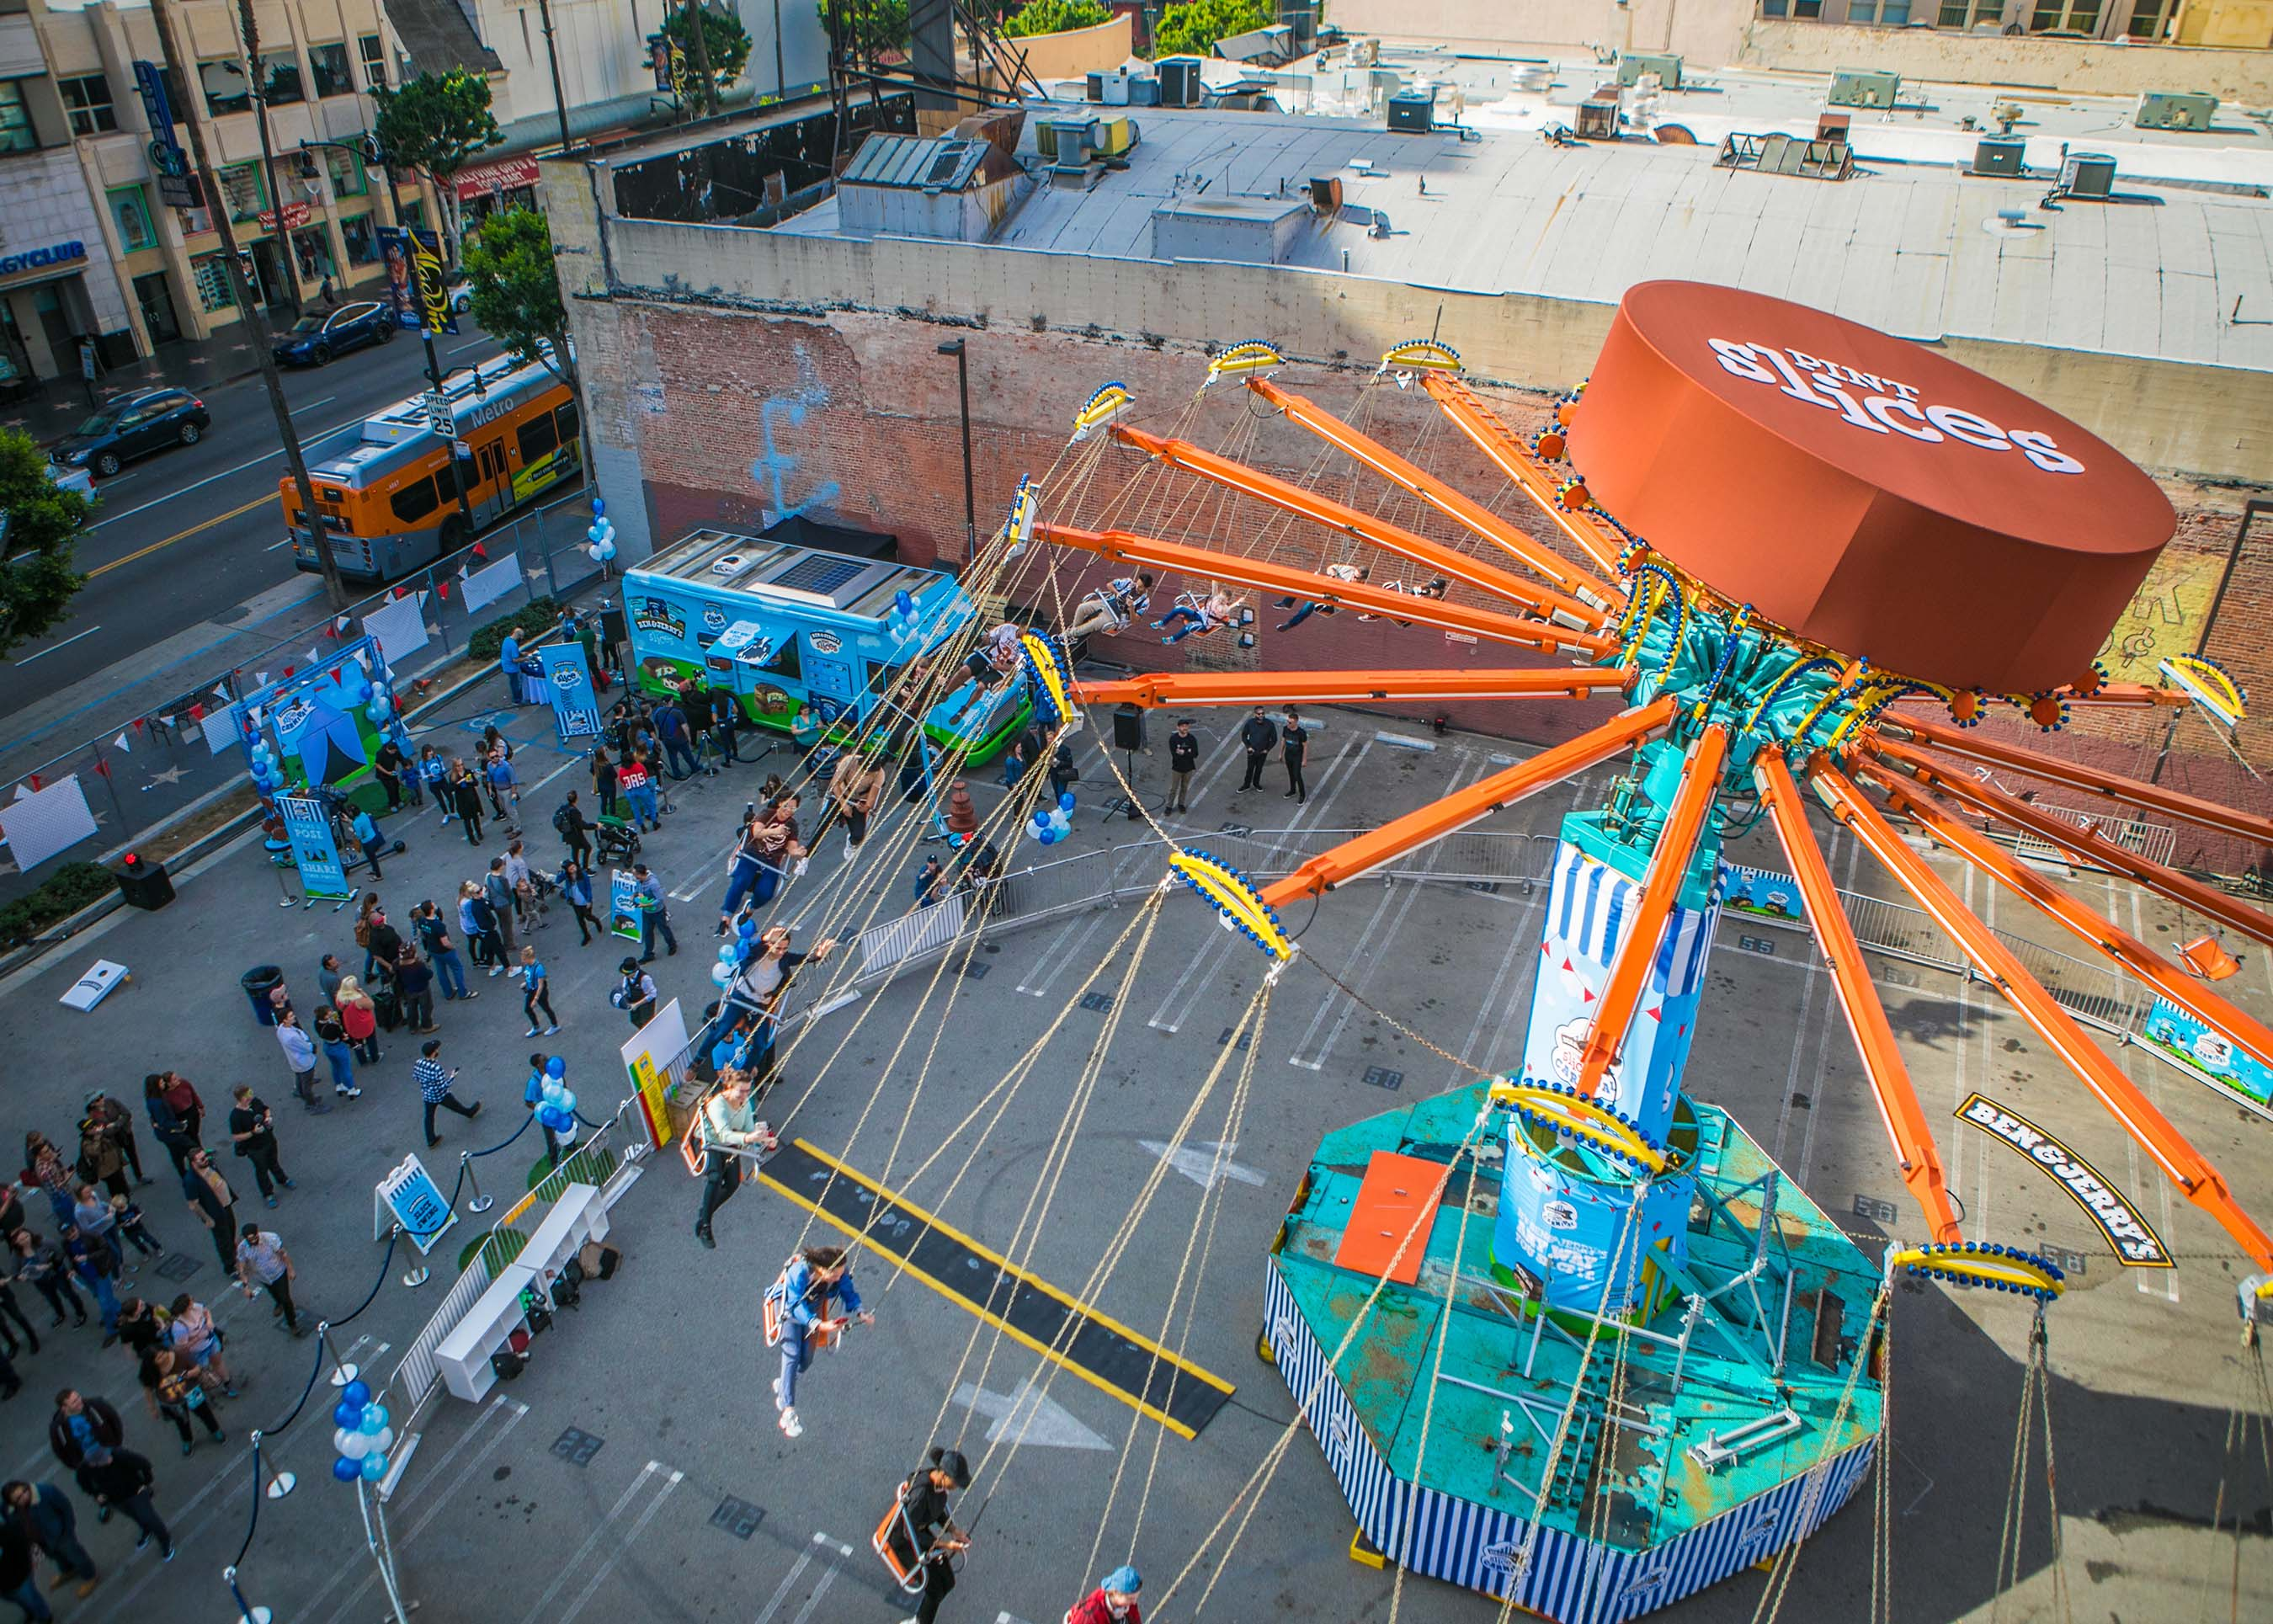 Ben & Jerry's pint slice carnival is underway at the corner of Hollywood & Vine on Jan 16th from 11am-8pm.